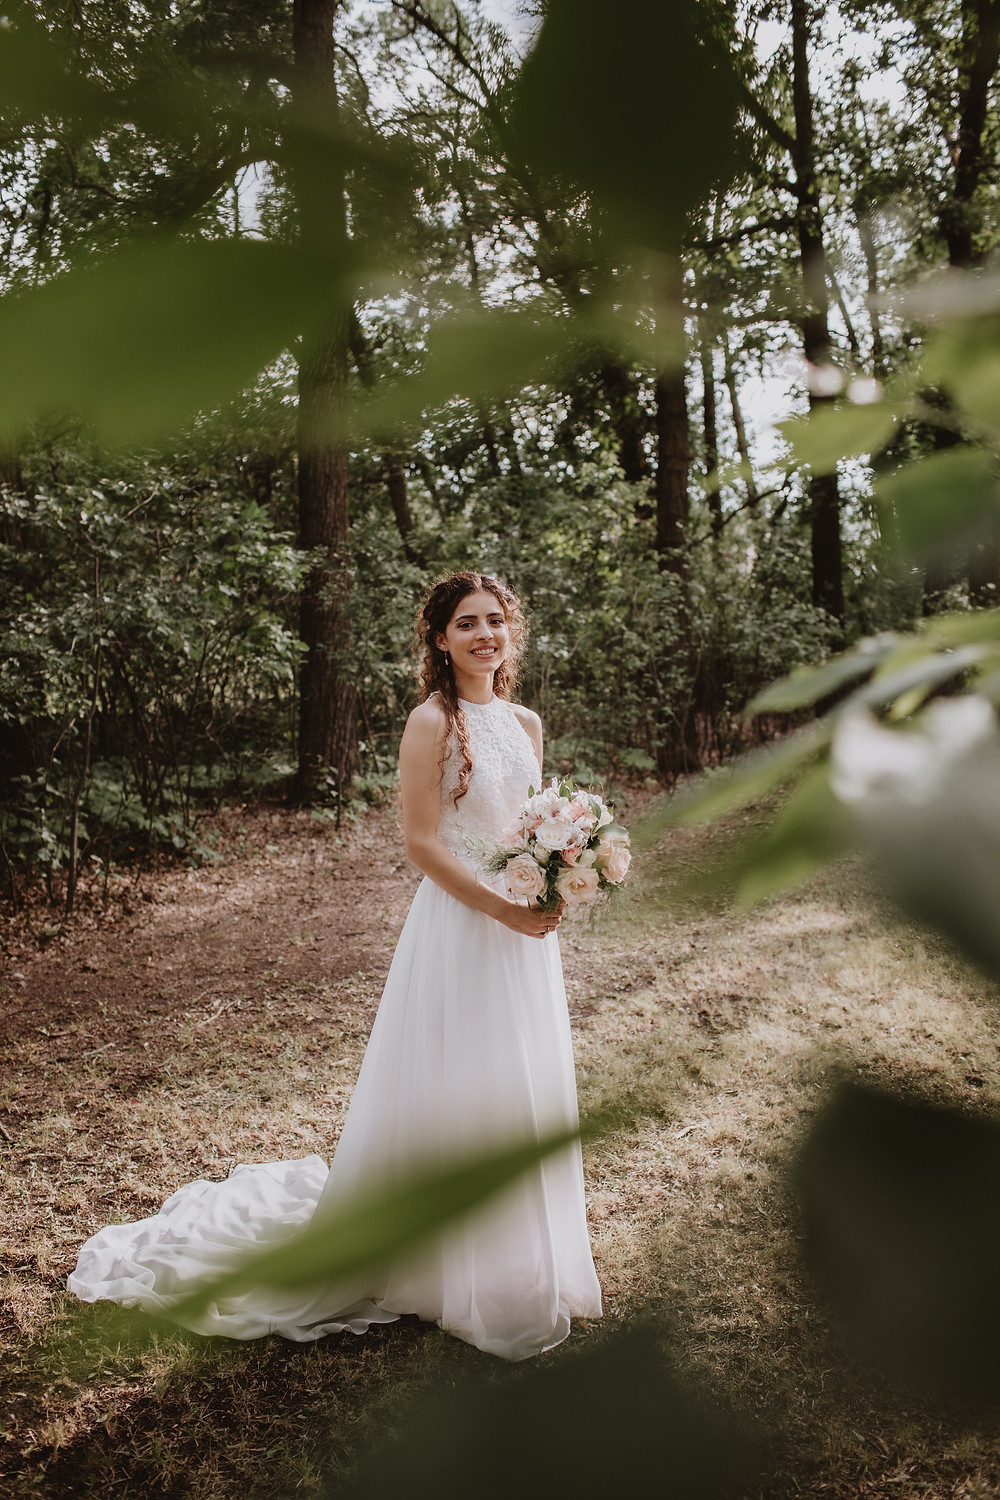 Smiling bride, posing in the forest for wedding portraits.